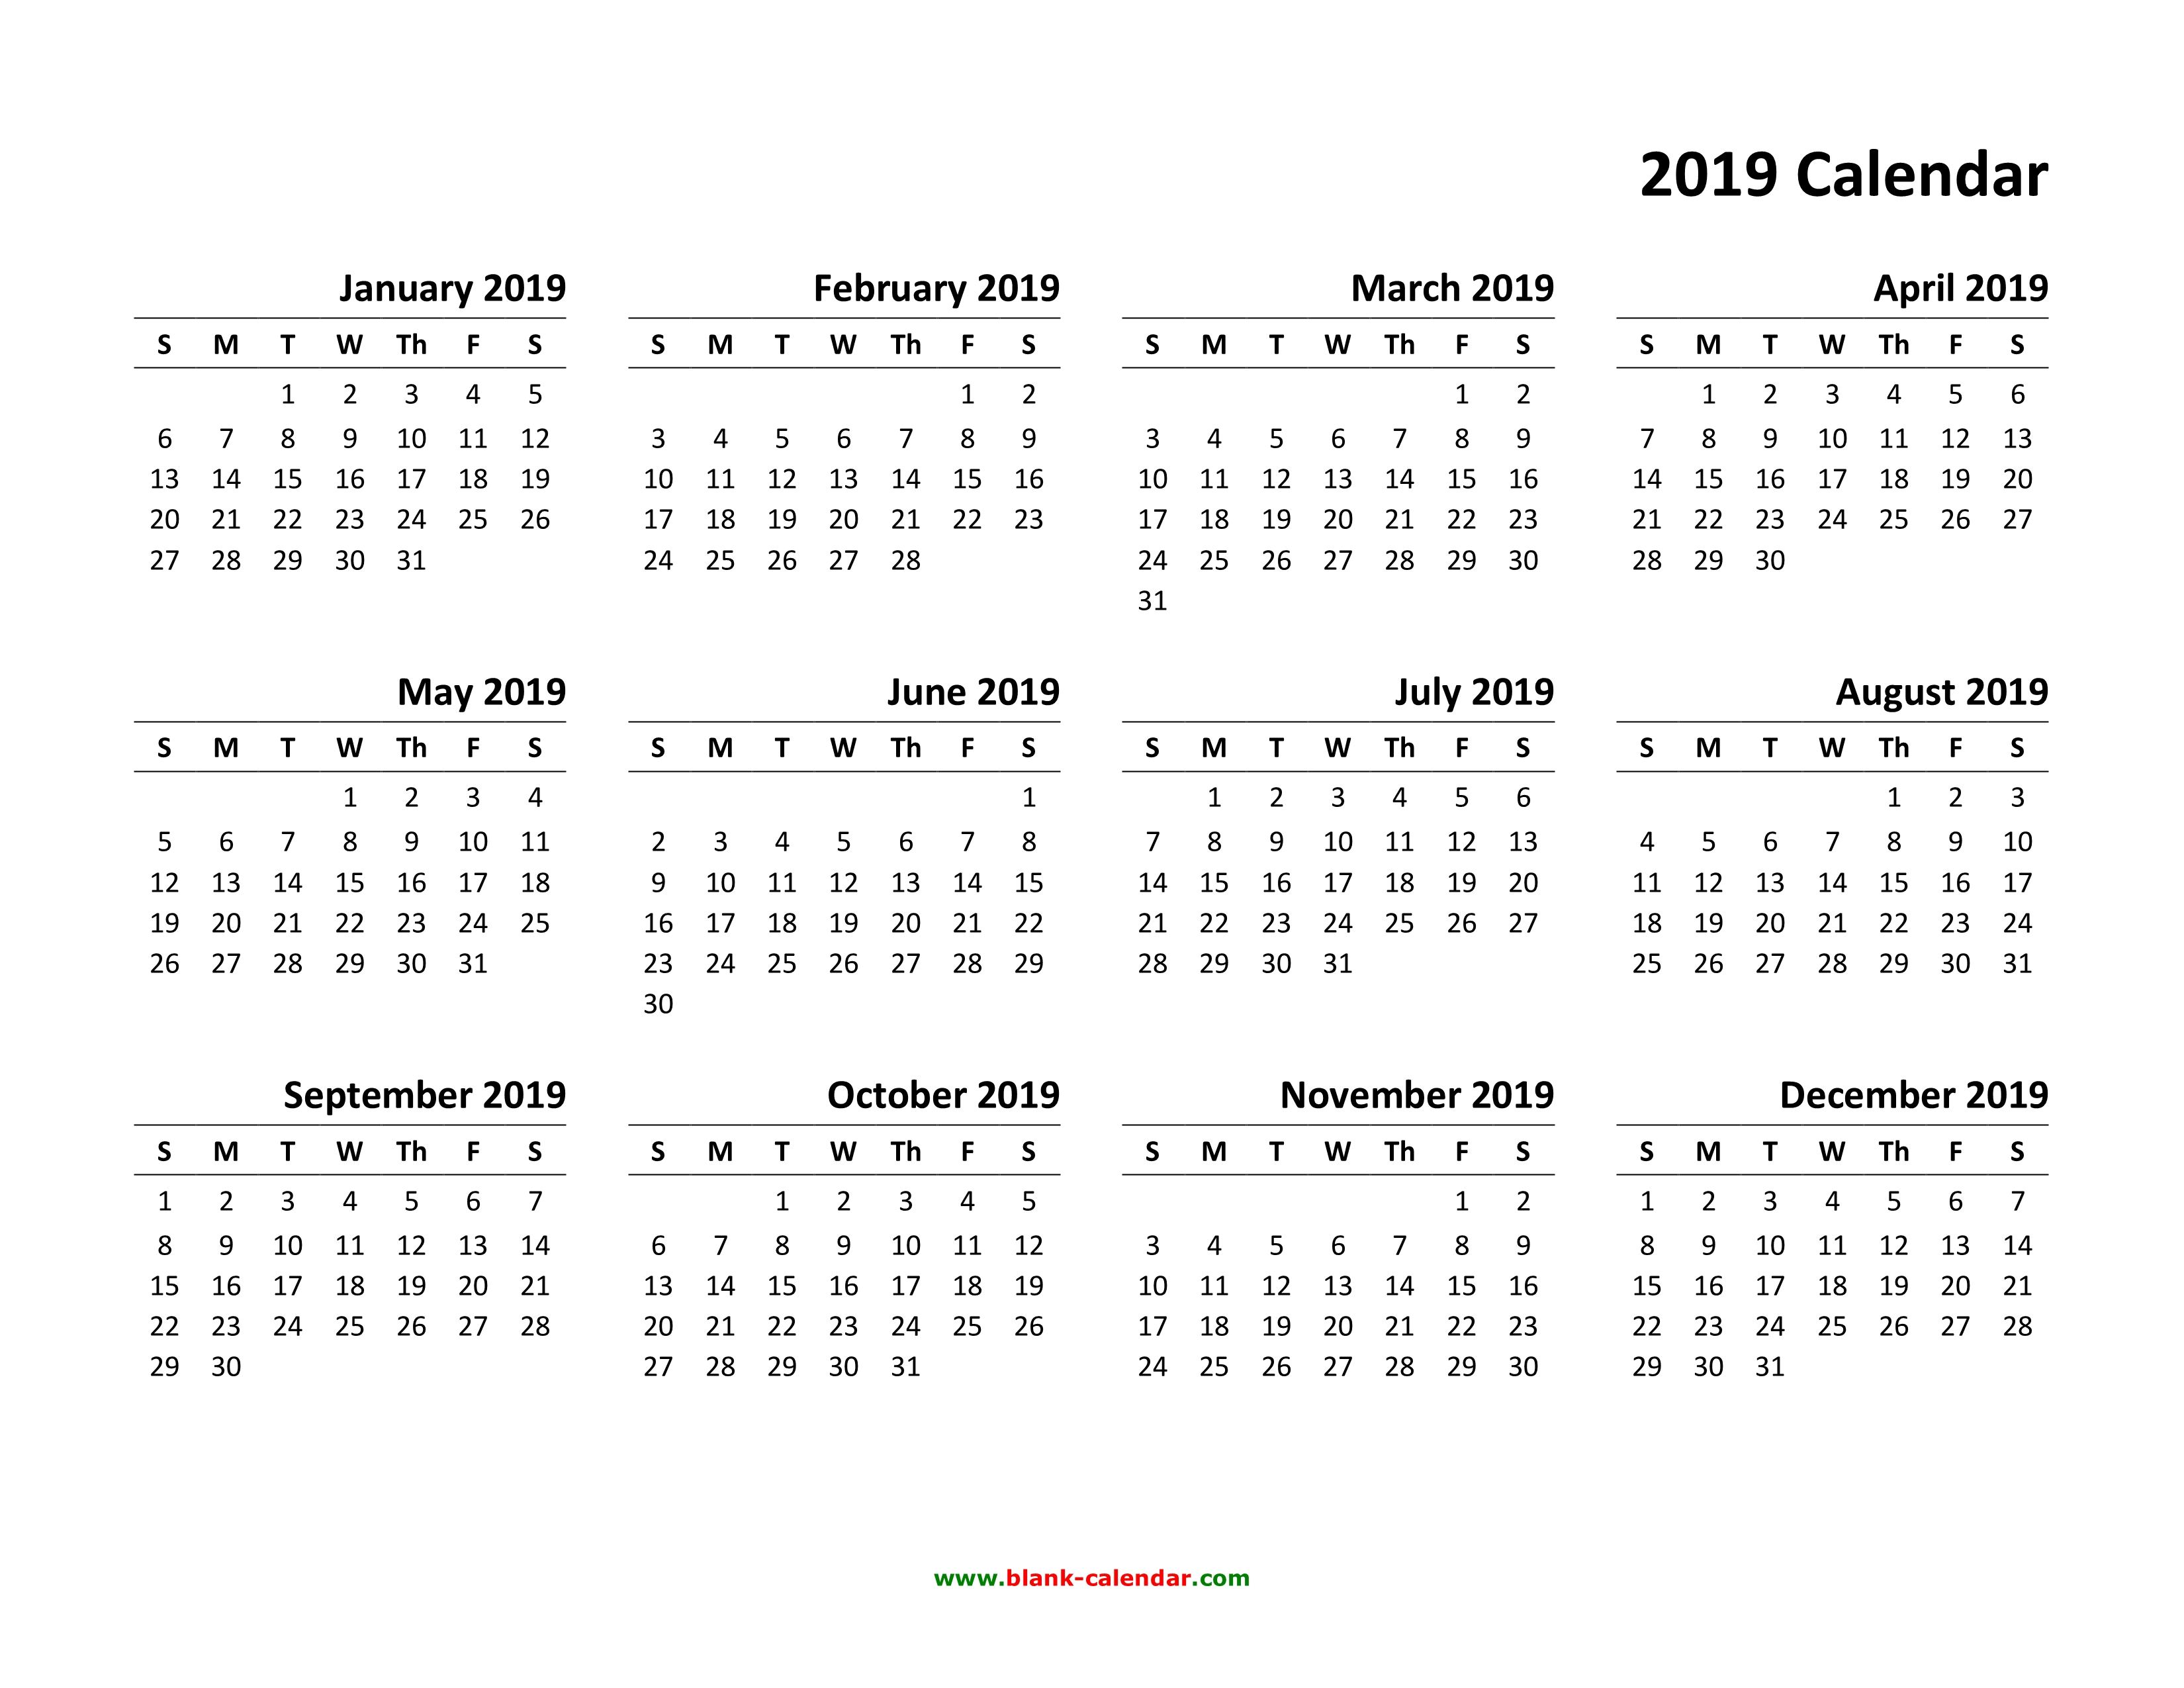 yearly calendar 2019 template 01 docx pdf jpg yearly calendar 2019 template 02